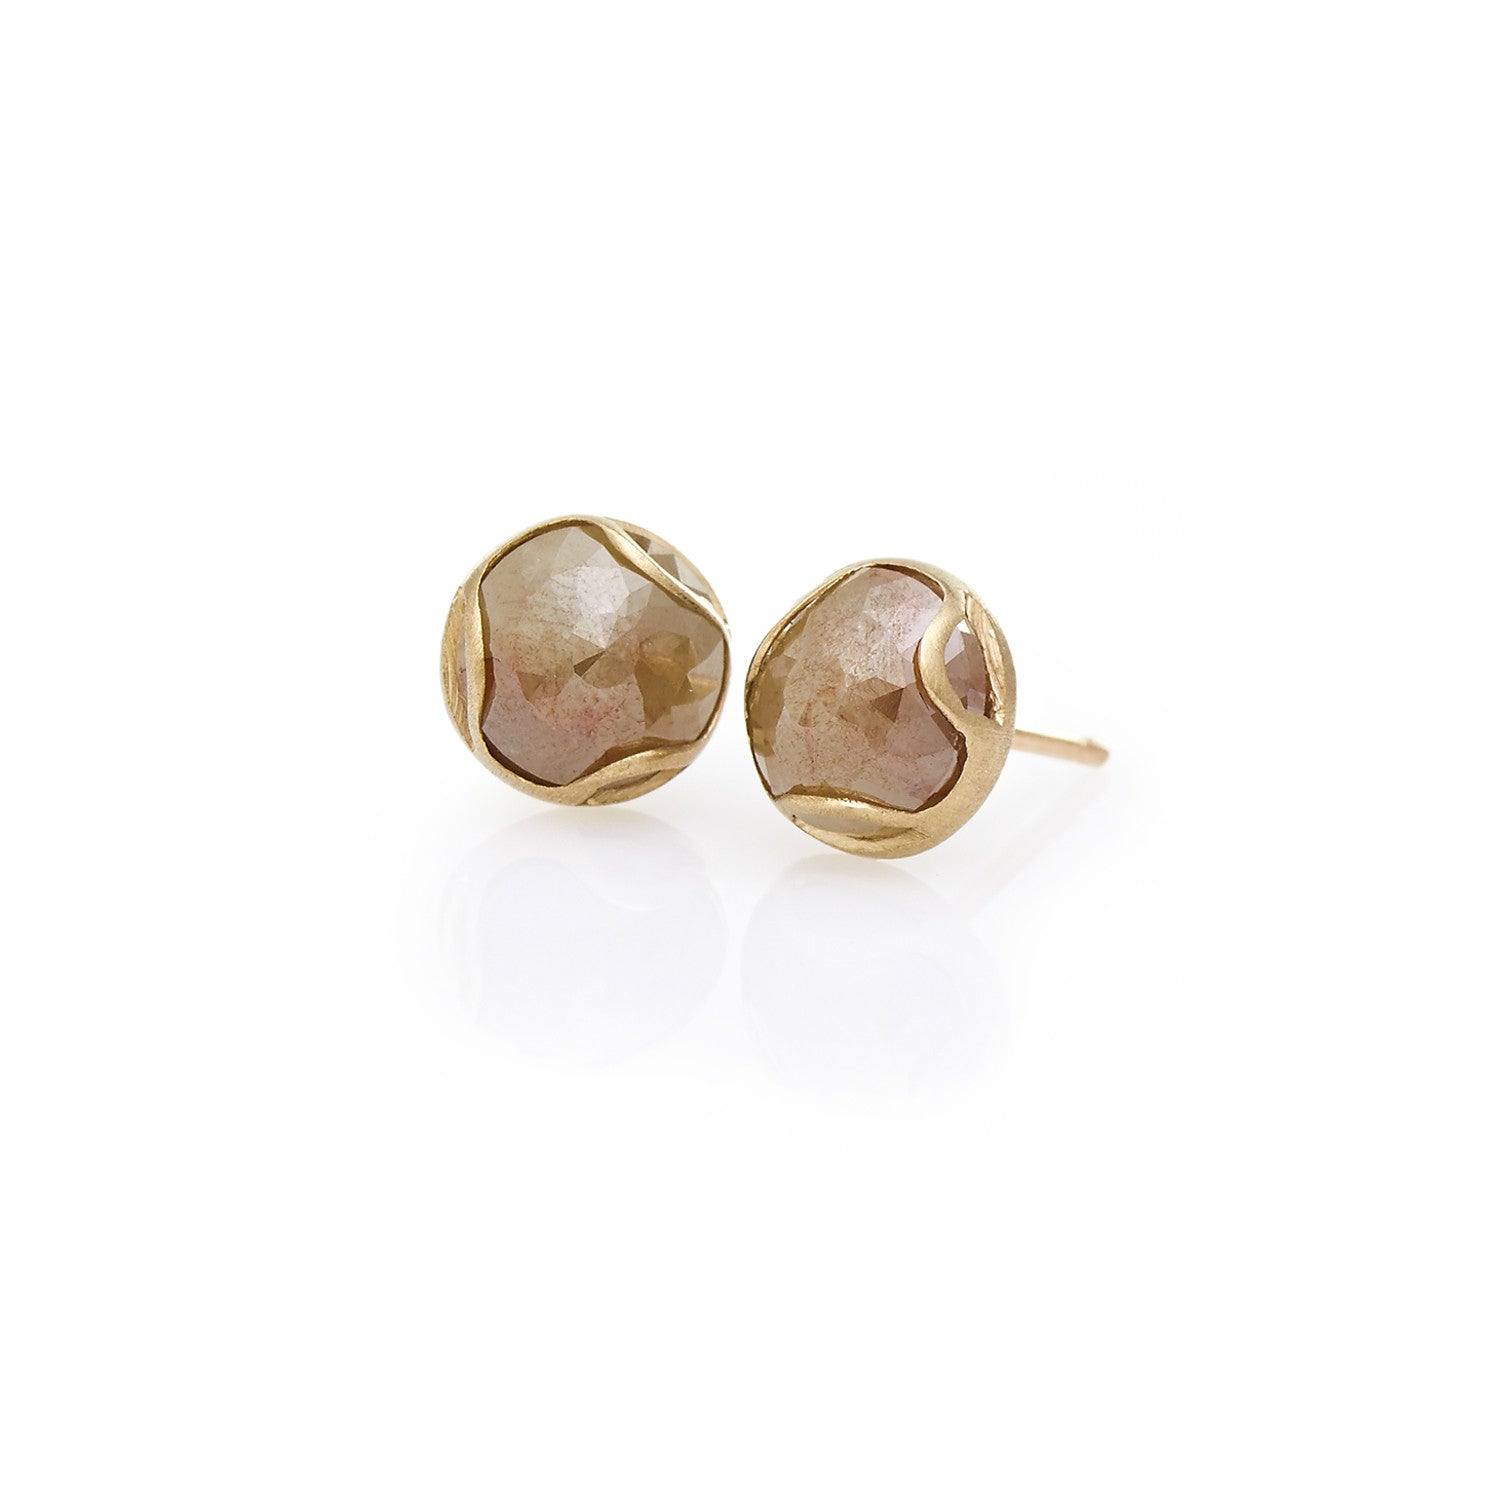 Rustic Diamond Stud Earrings-18K Yellow Gold